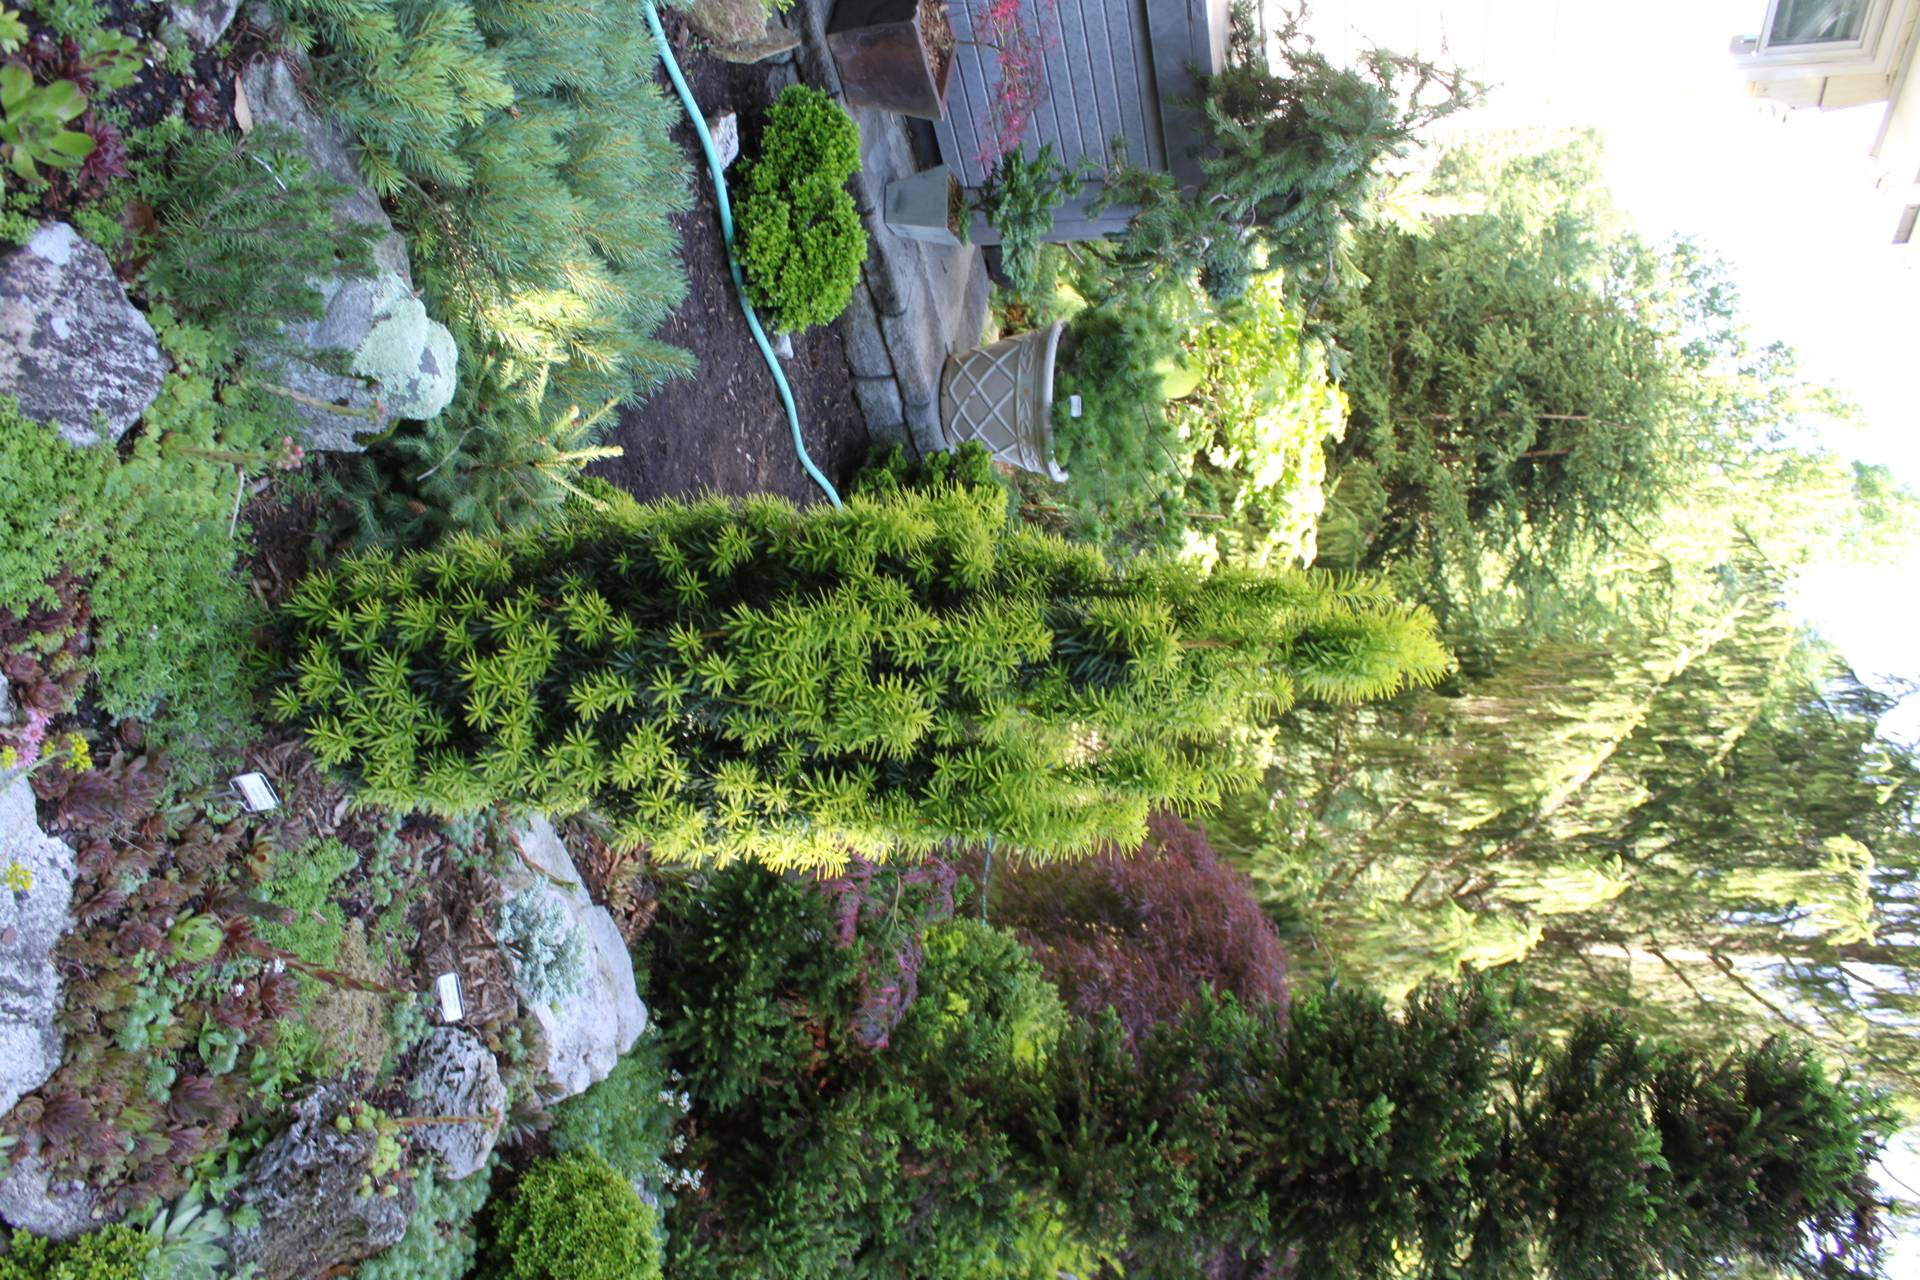 Taxus baccata Silver Spire conifer green gold silver variegated needles